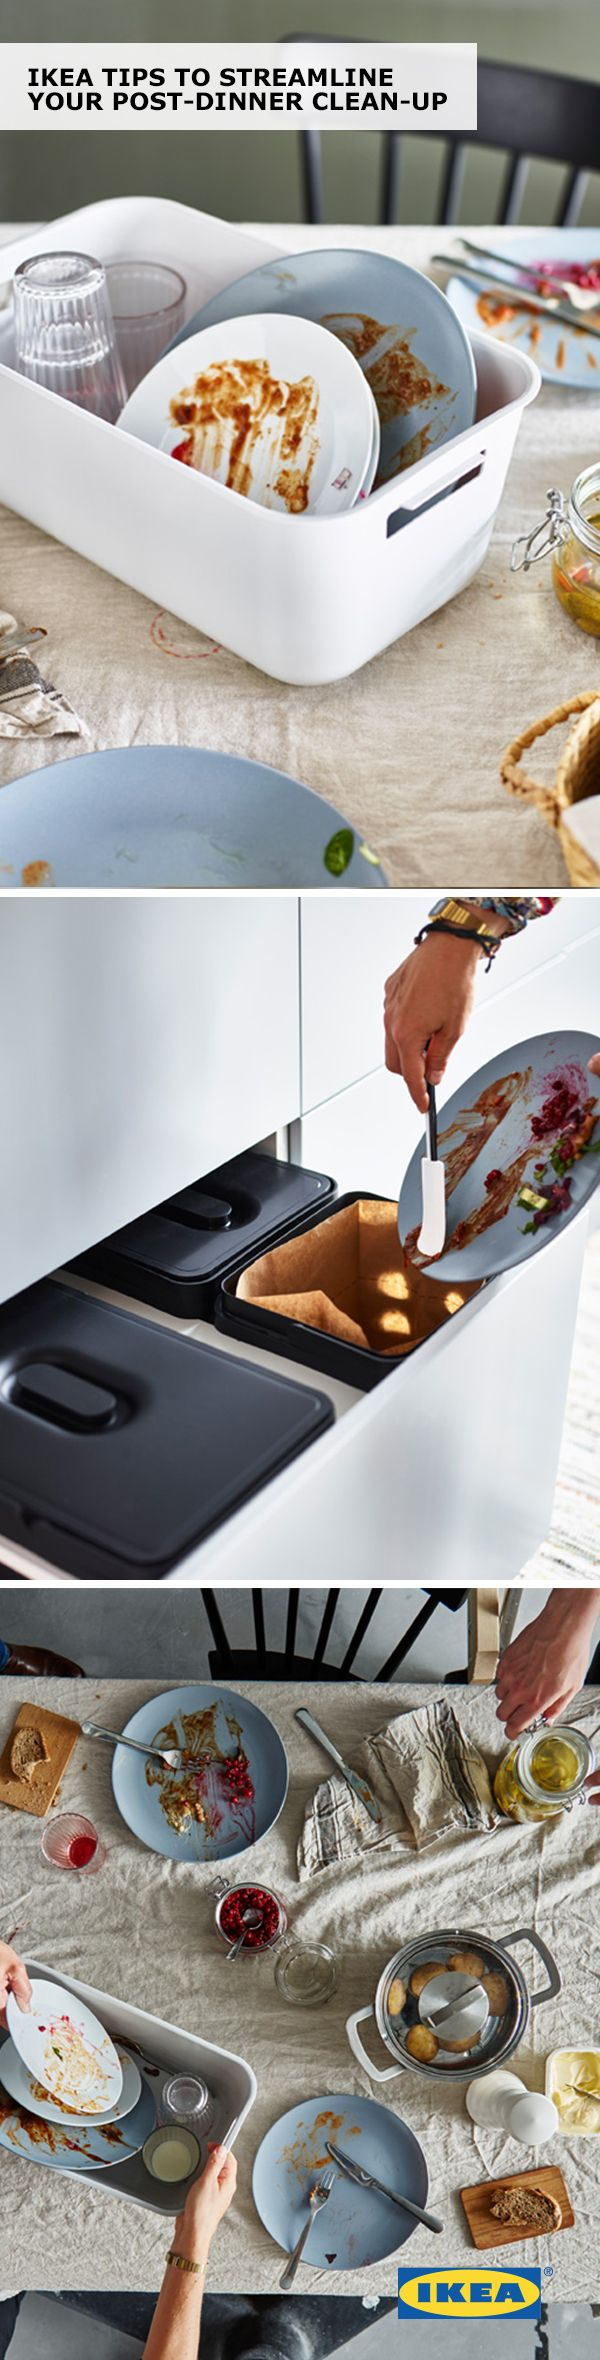 After enjoying a family dinner, the last thing you want to do is put away the leftovers and clean the dishes. Here are a few IKEA tips to help streamline your post-dinner cleanup - and even get your kids involved!